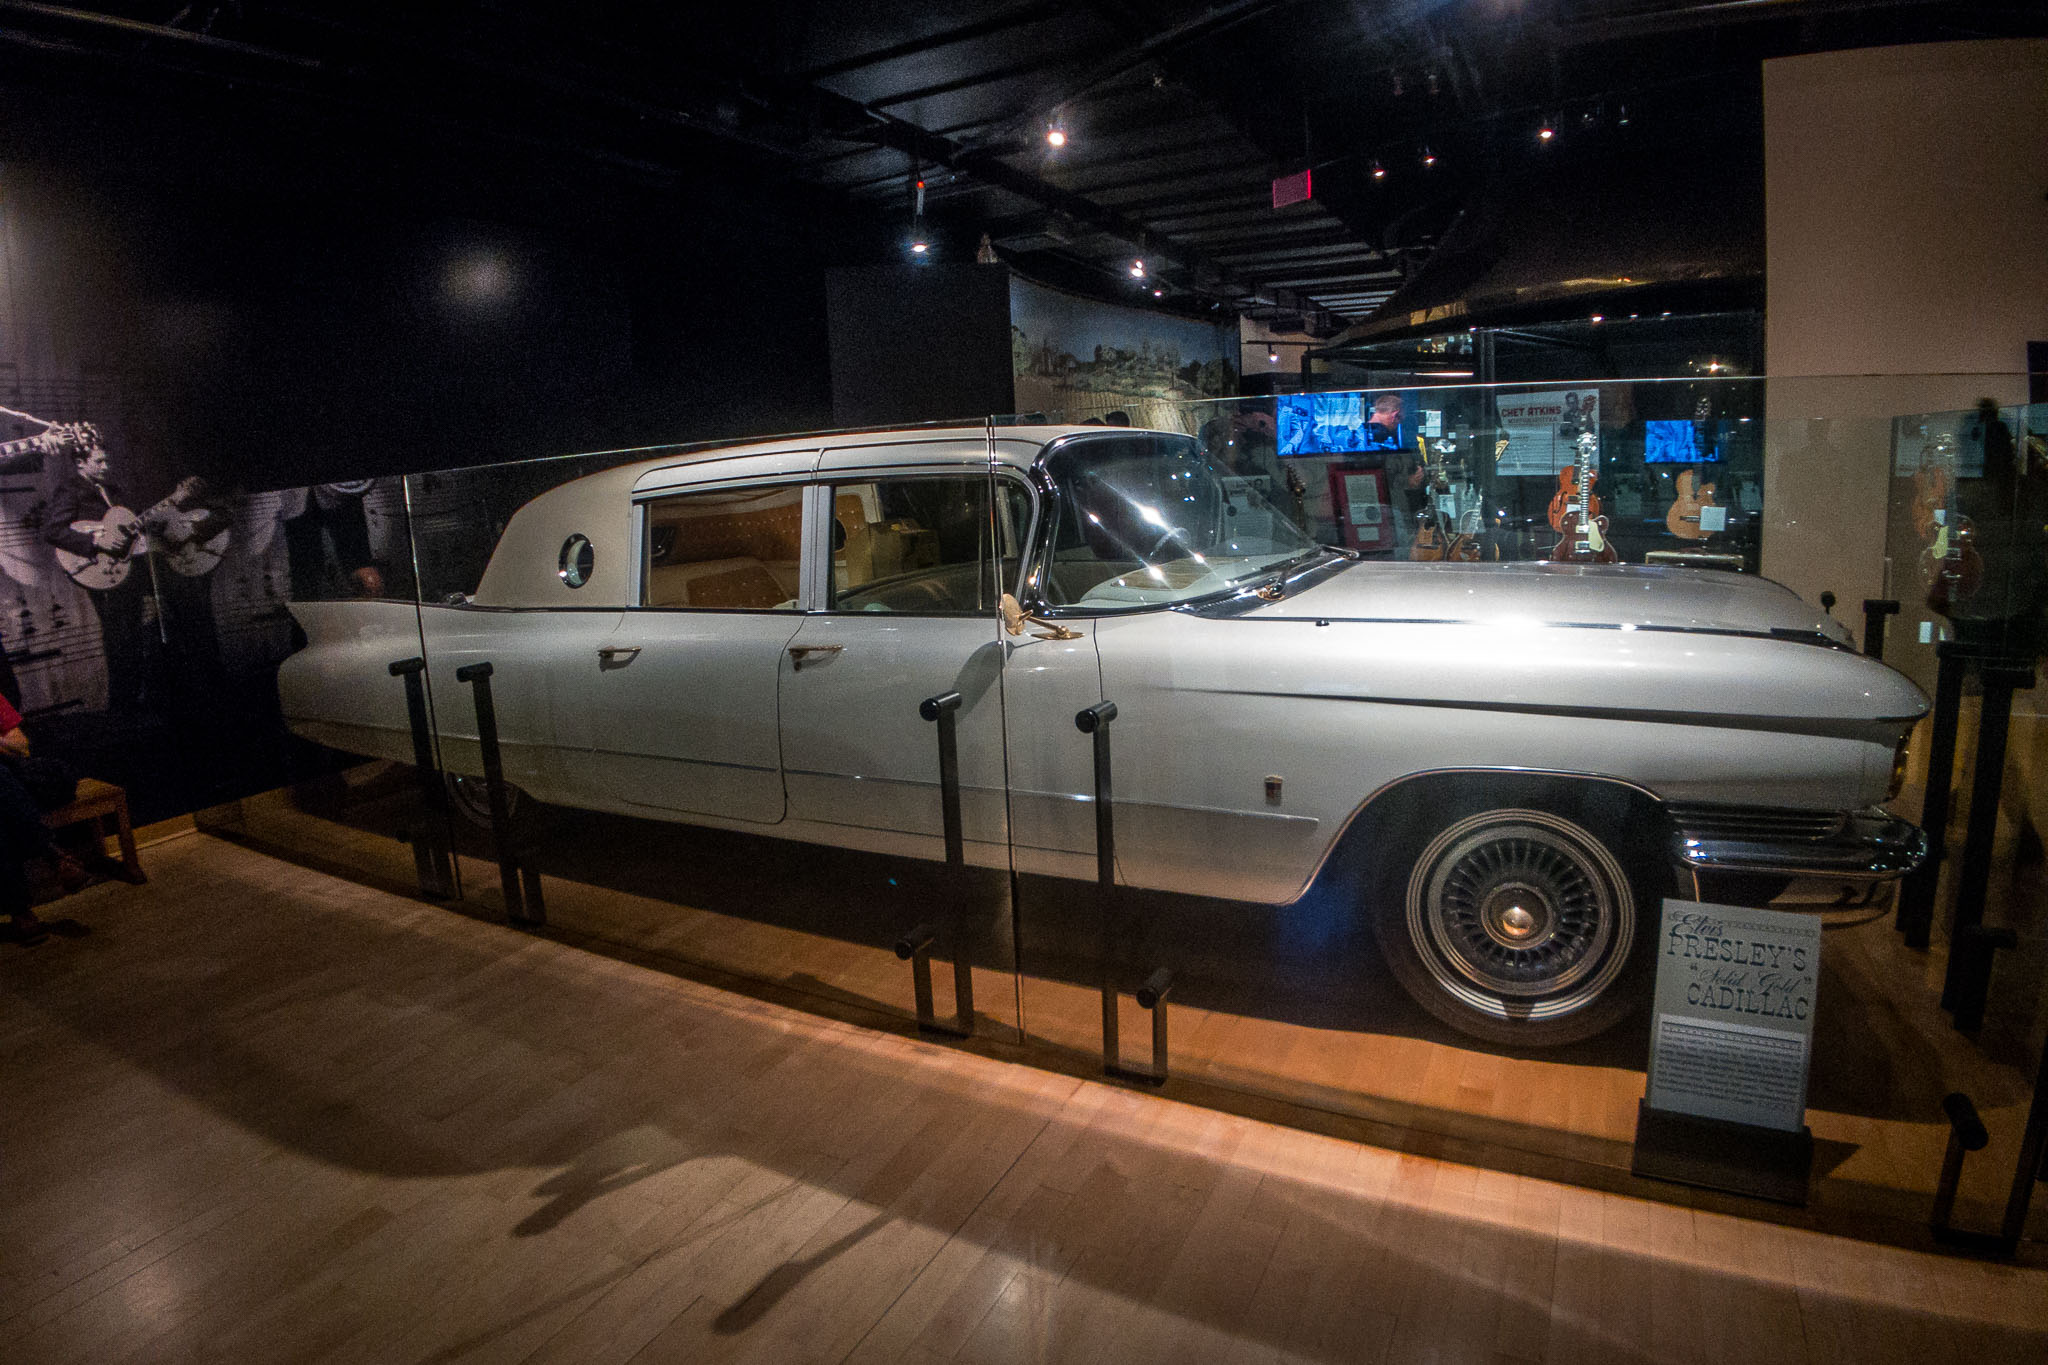 Elvis Presley's Solid Gold Cadillac at CMHOF